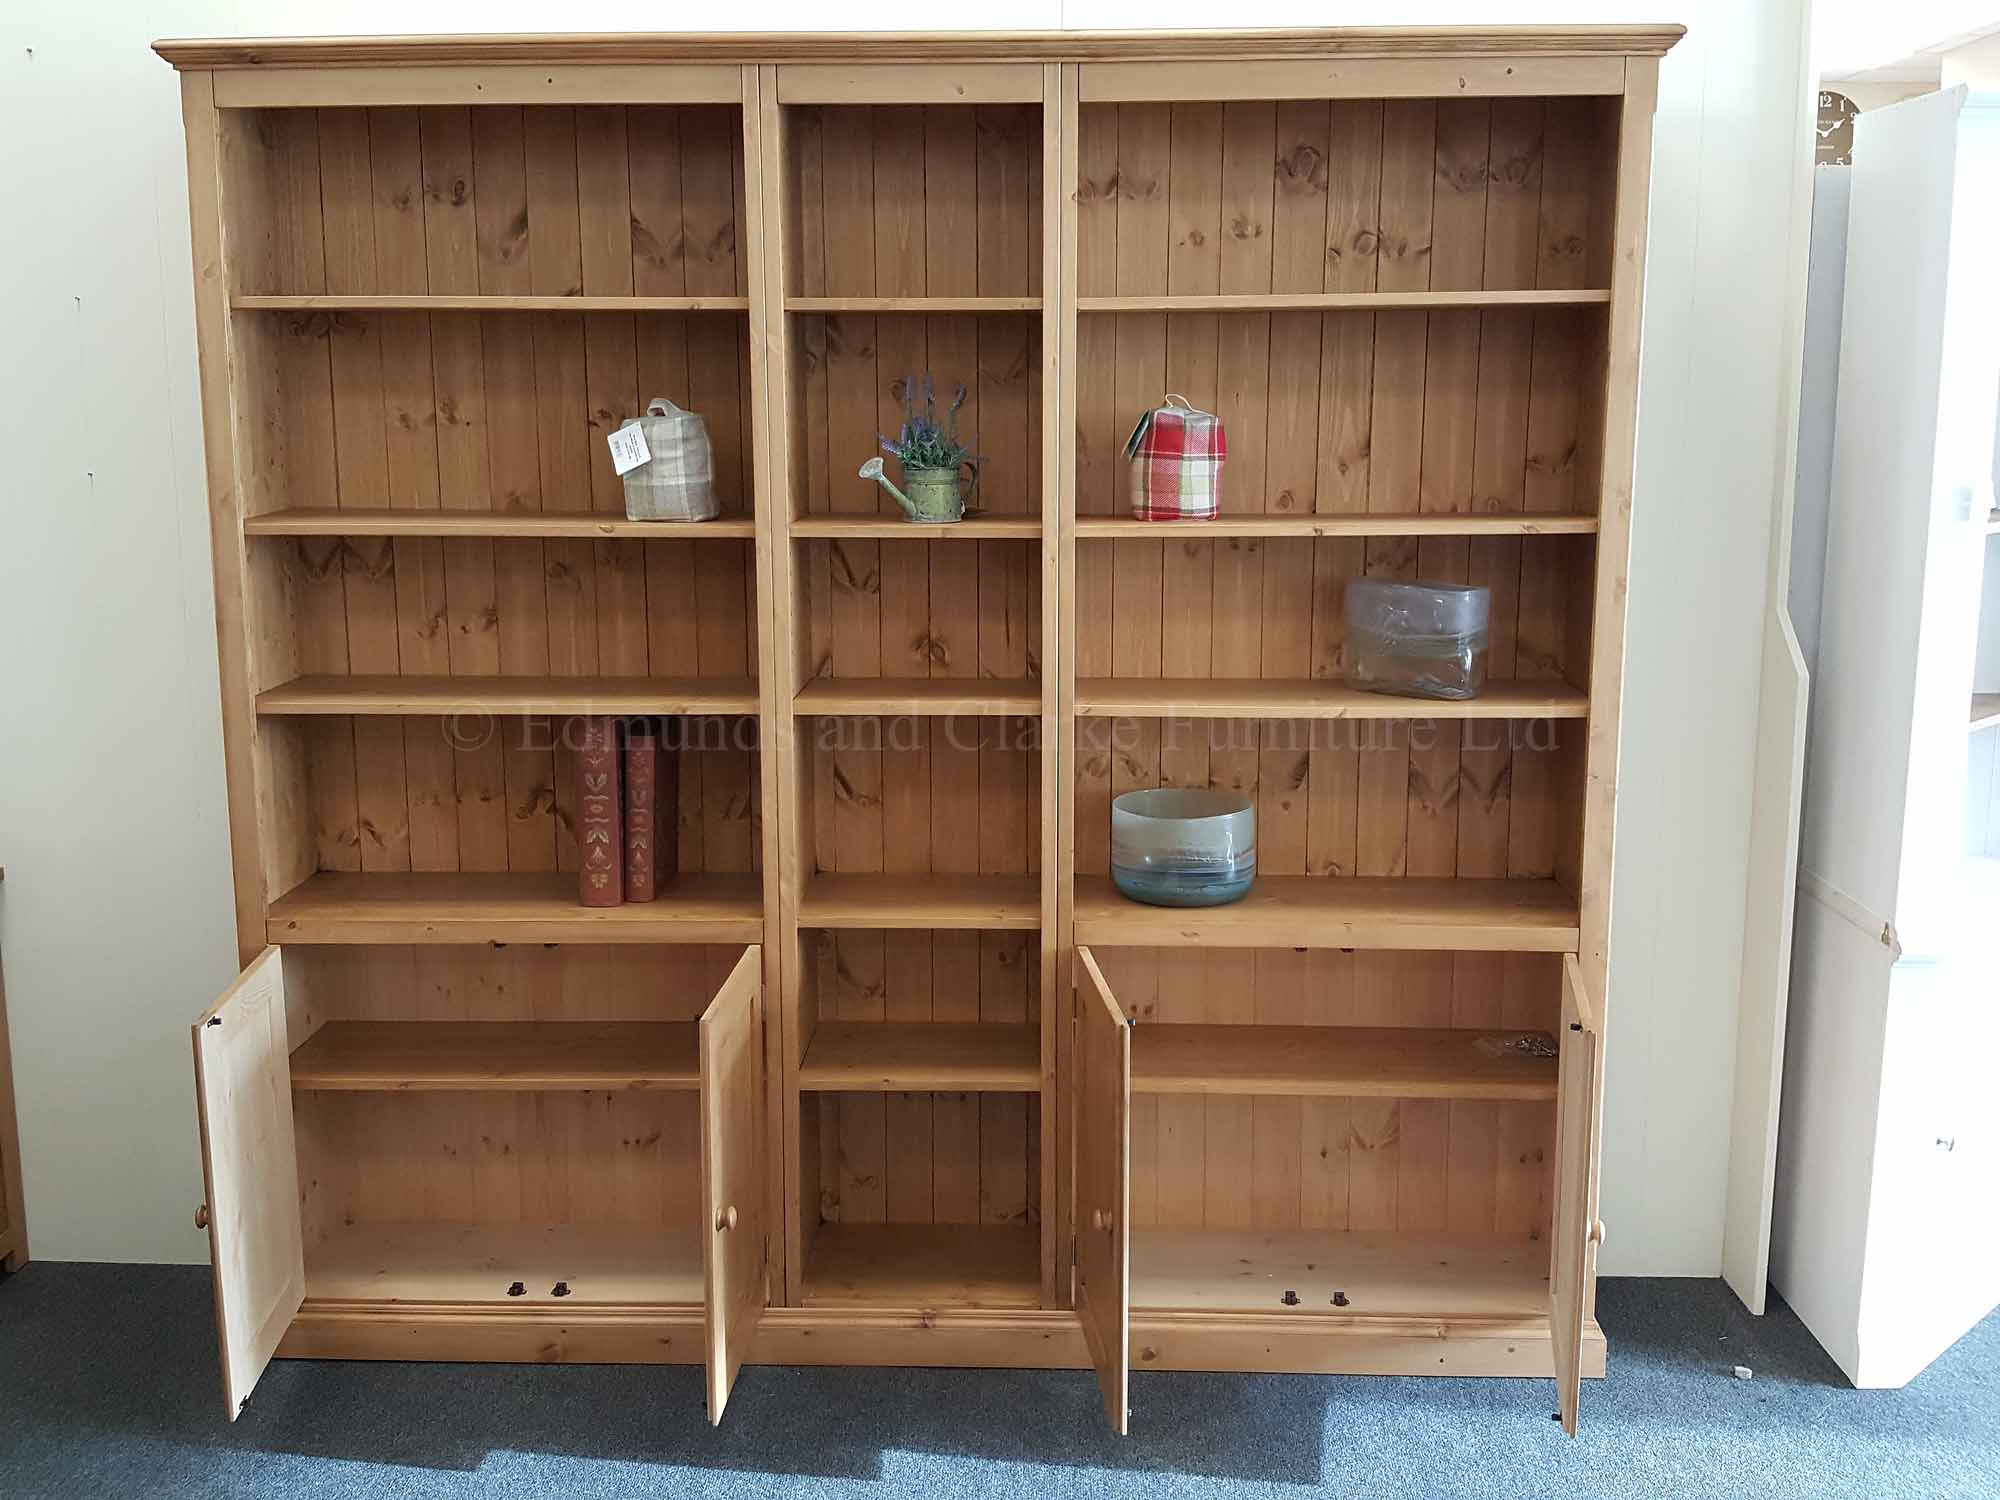 Bespoke pine wide bookcase with doors and adjustable shelves